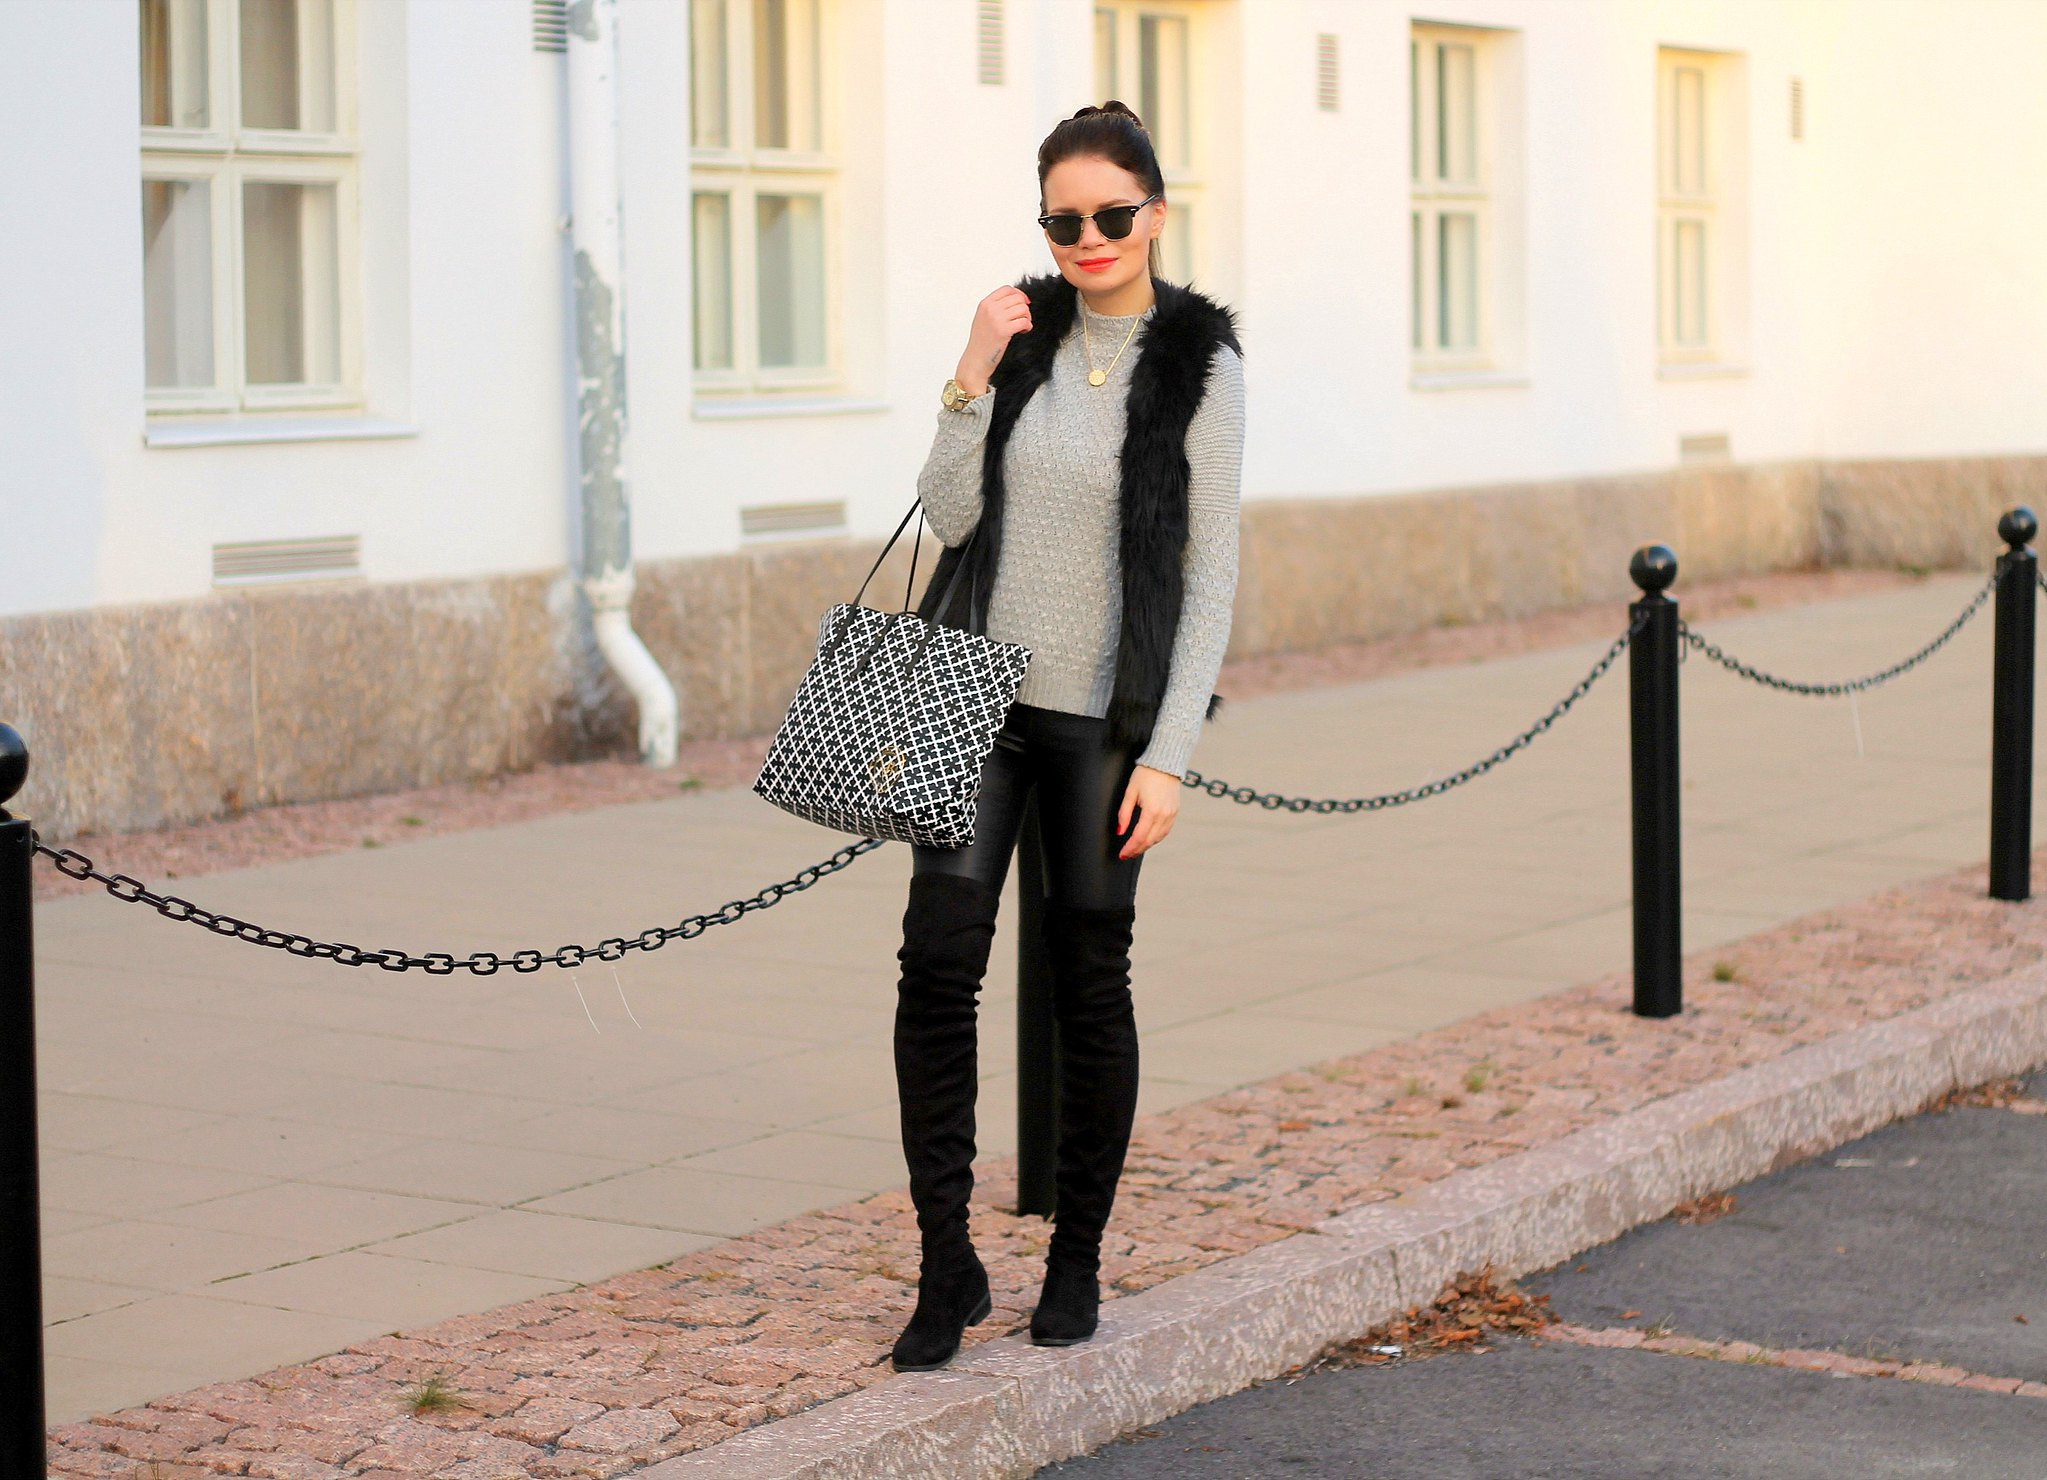 rayban outfit1